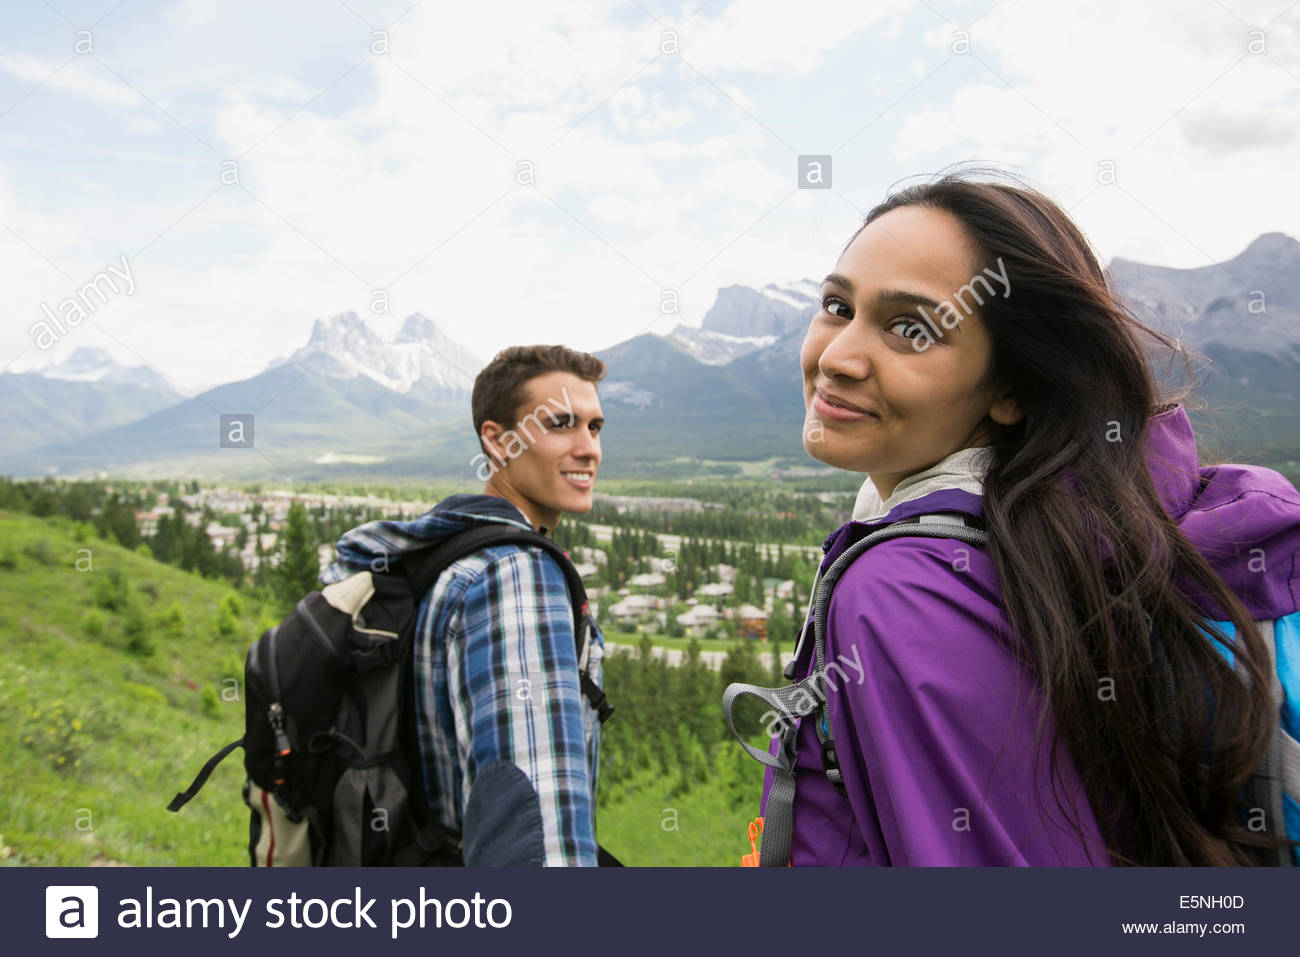 Couple with backpacks hiking near mountains - Stock Image